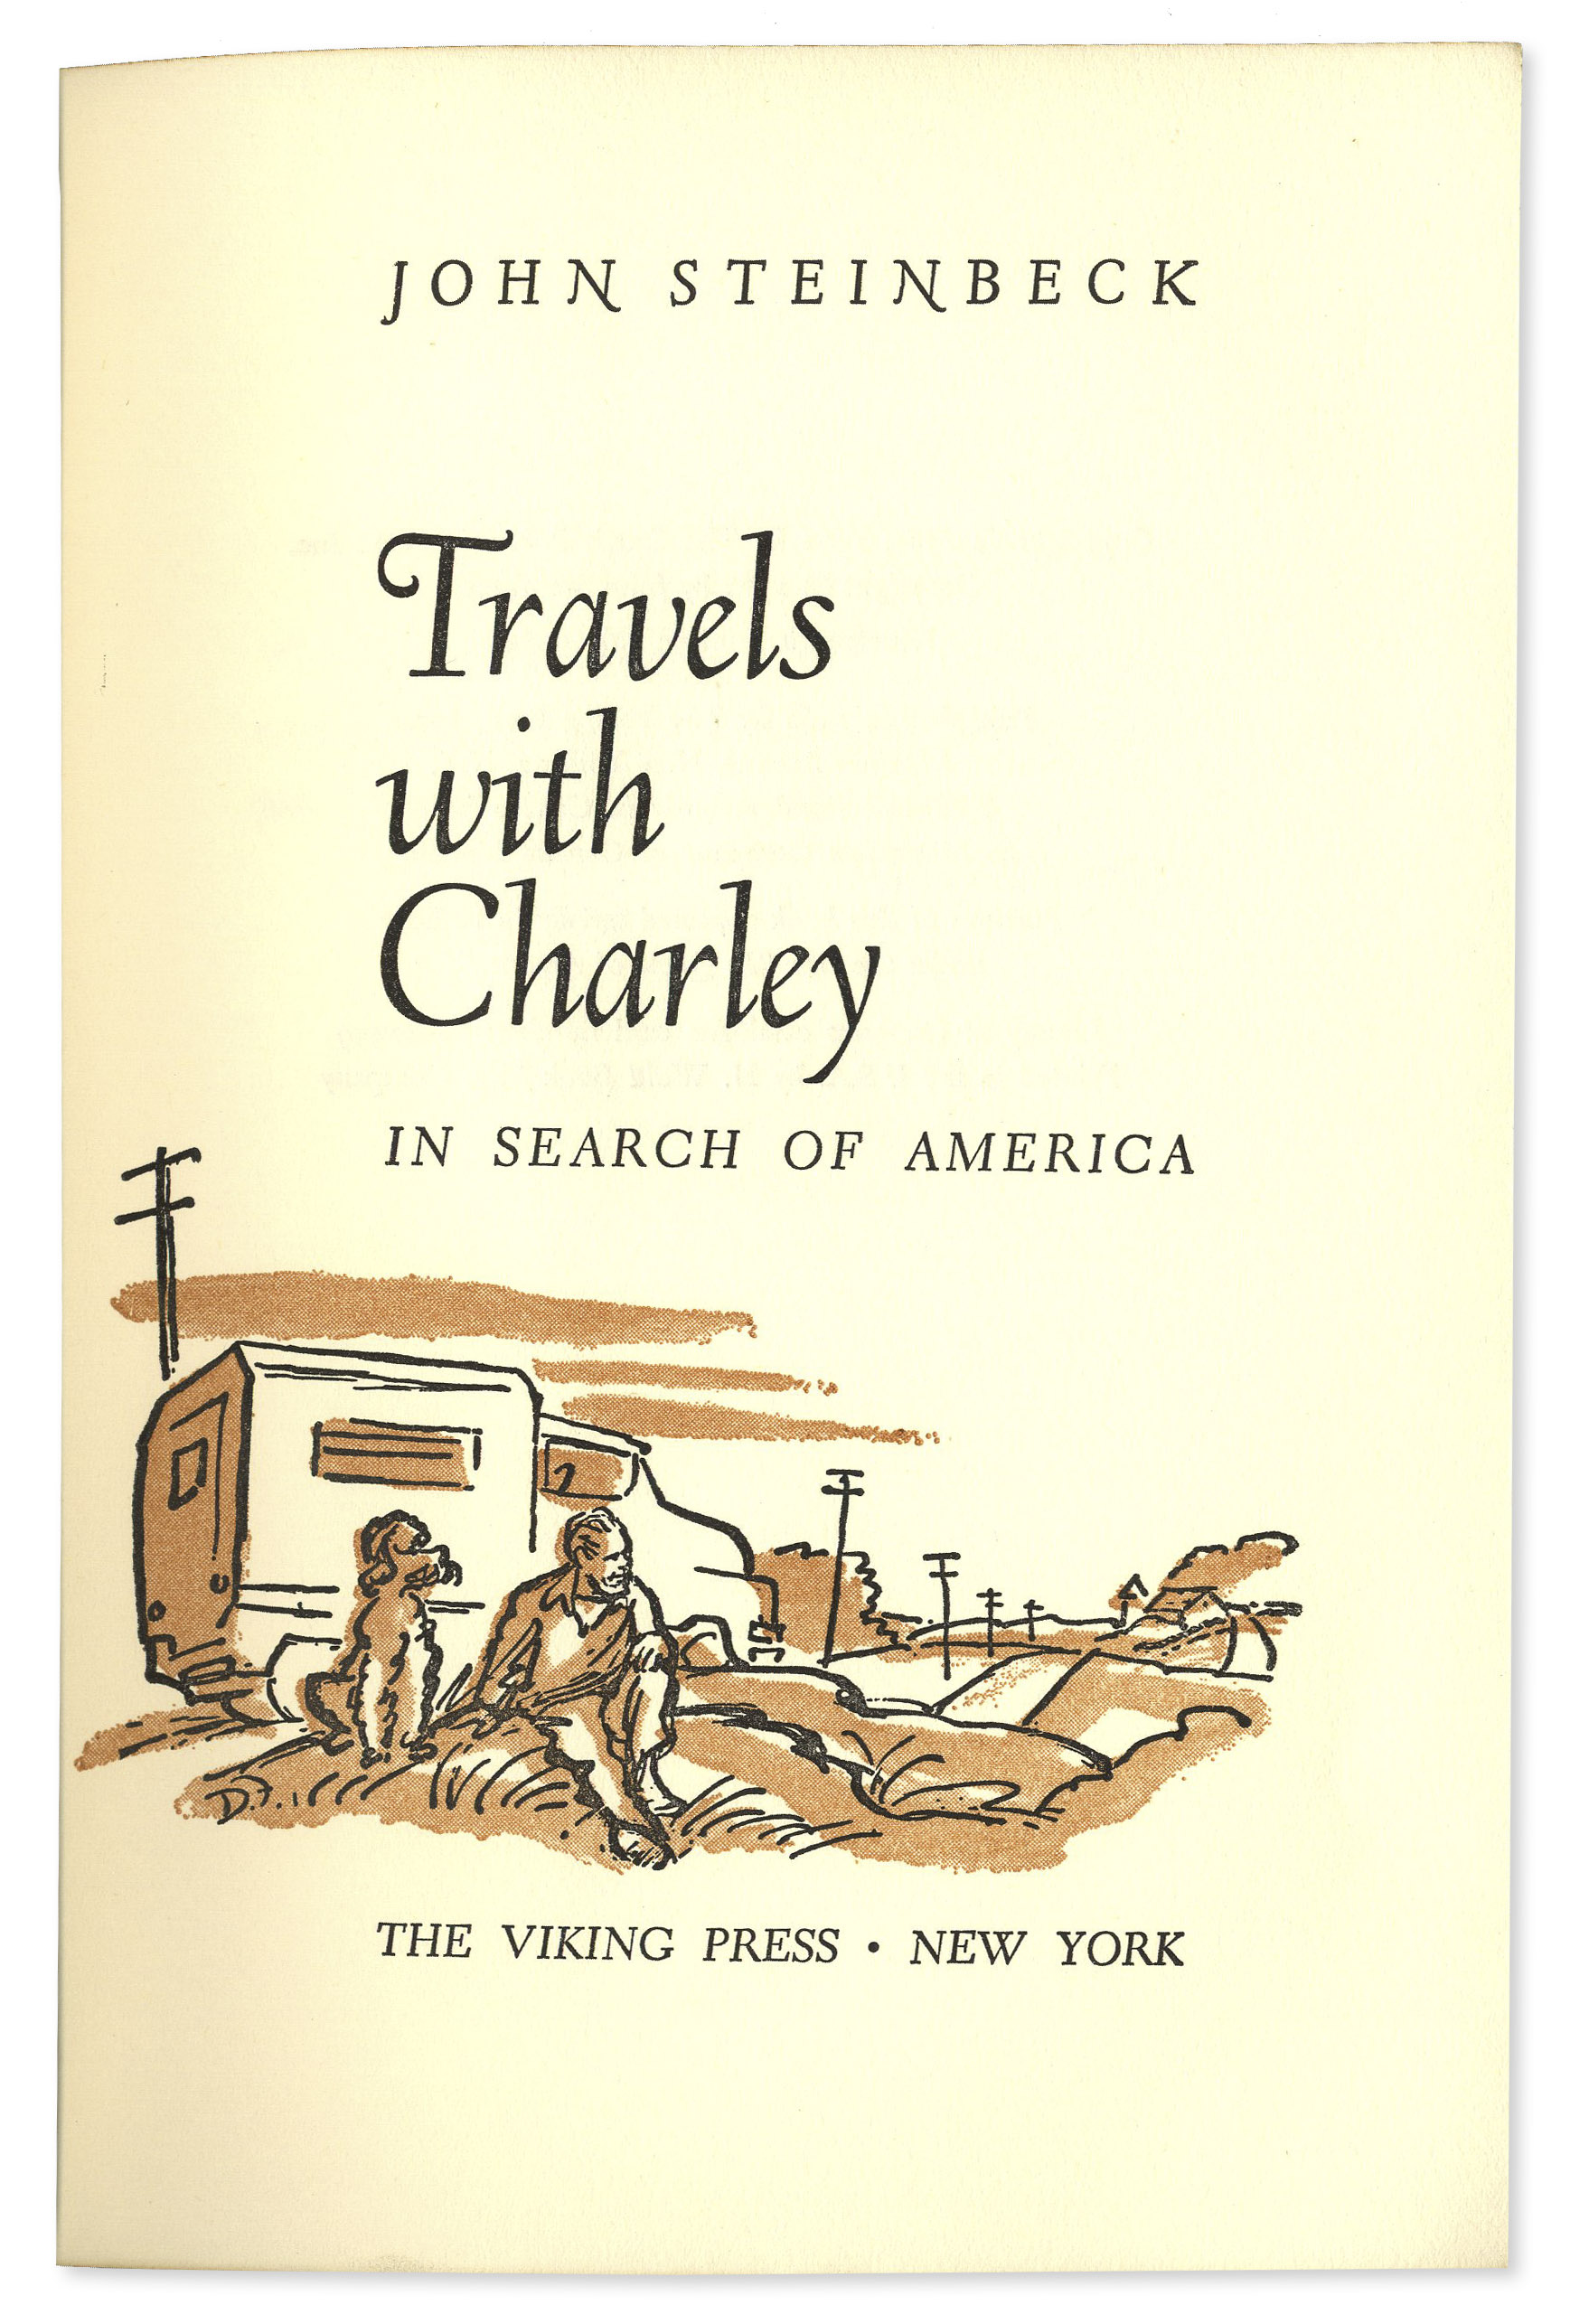 travels with charley essay A discussion of important themes running throughout travels with charley: in search of america great supplemental information for school essays and projects.